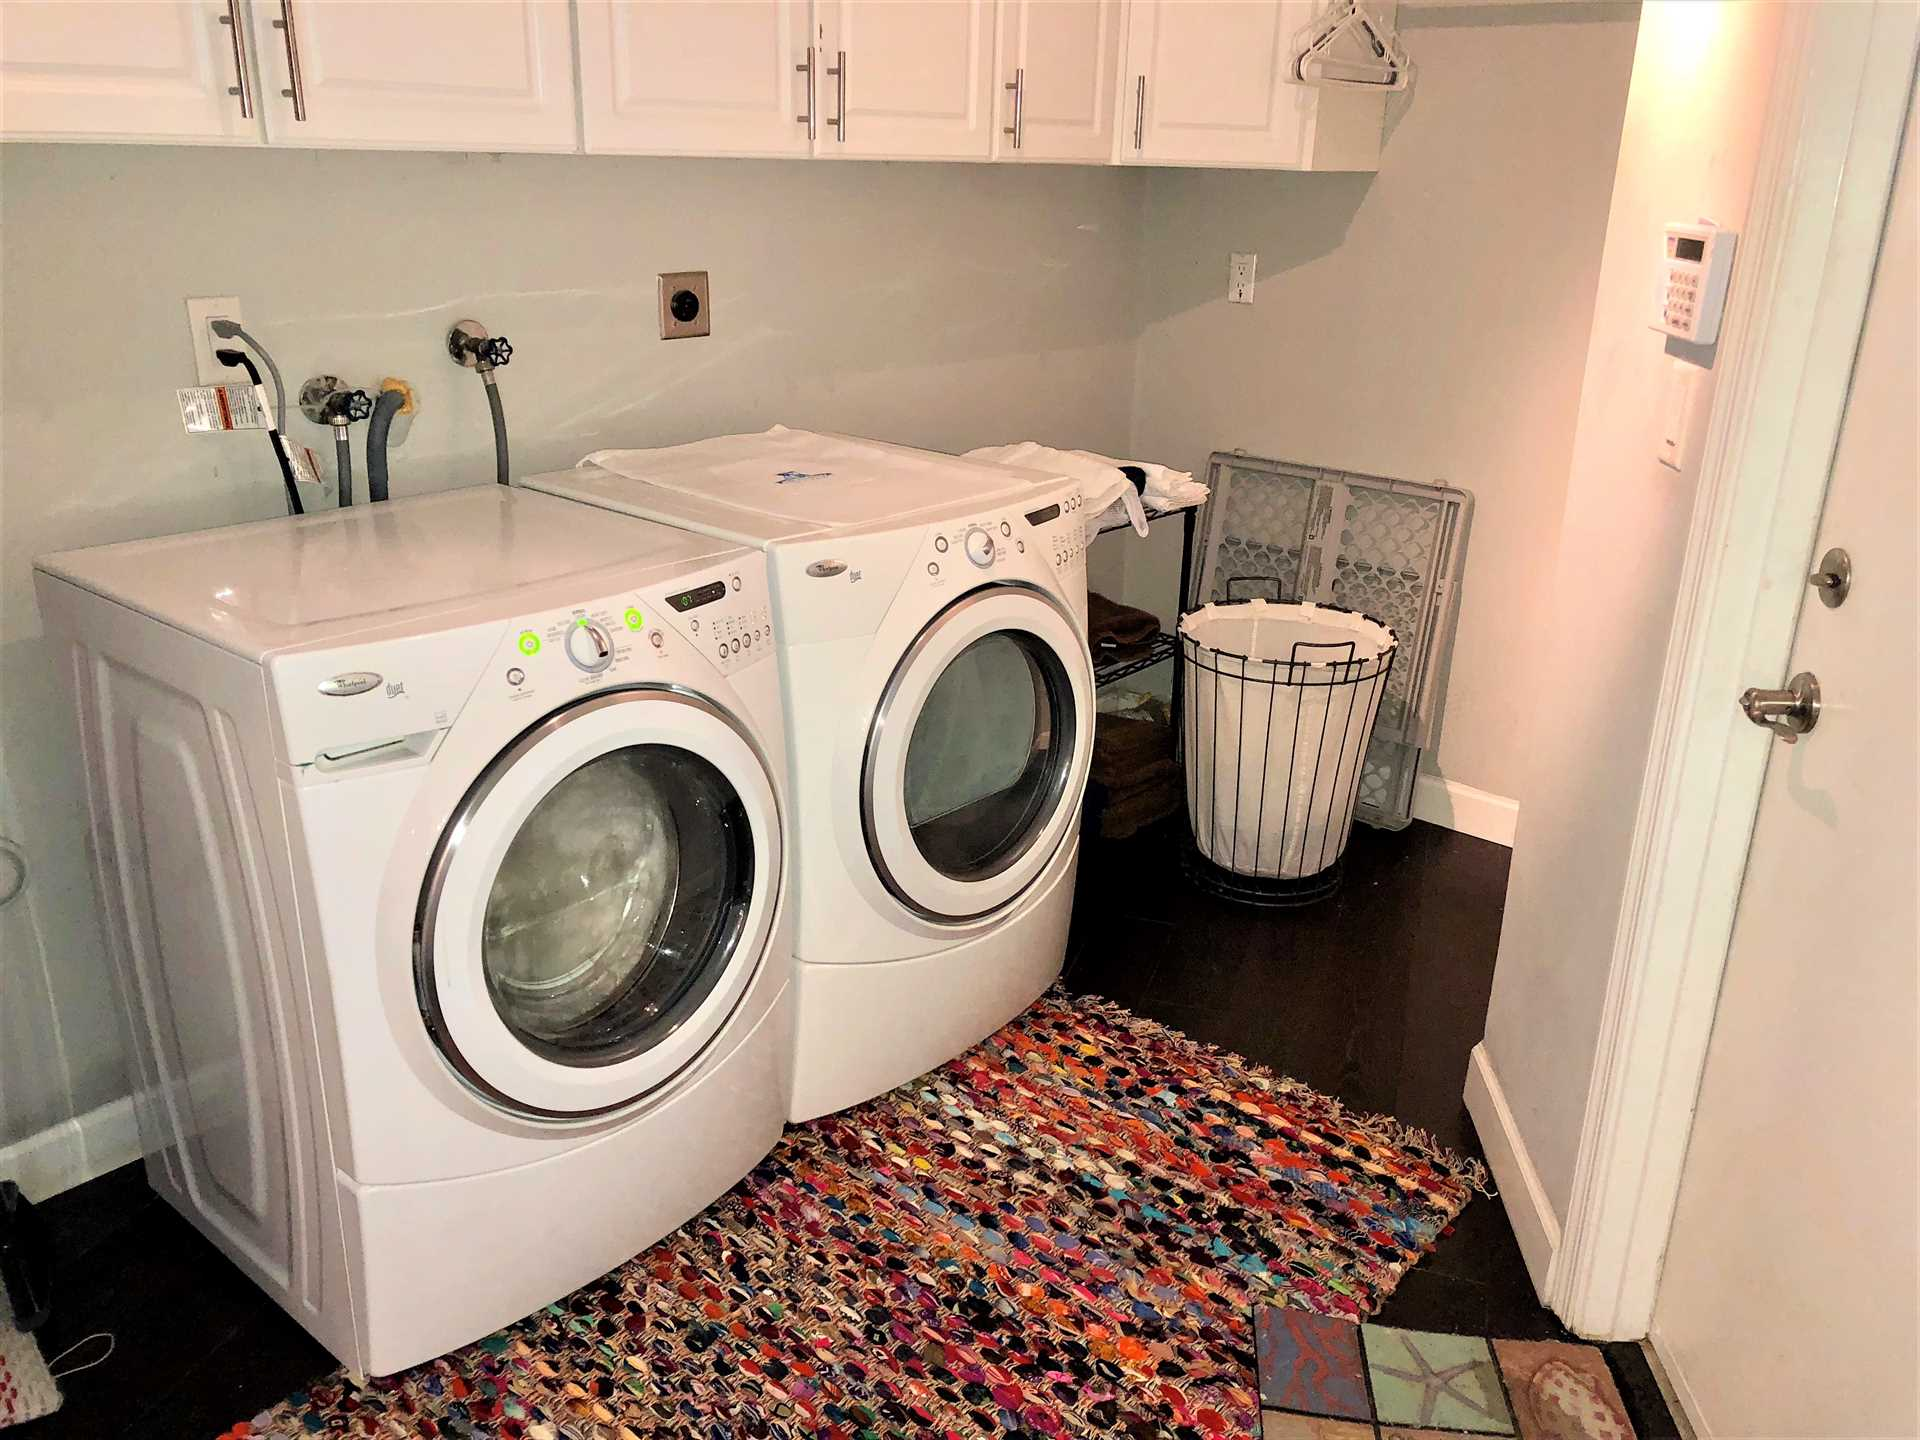 Utility room off kitchen has new washer and dryer.